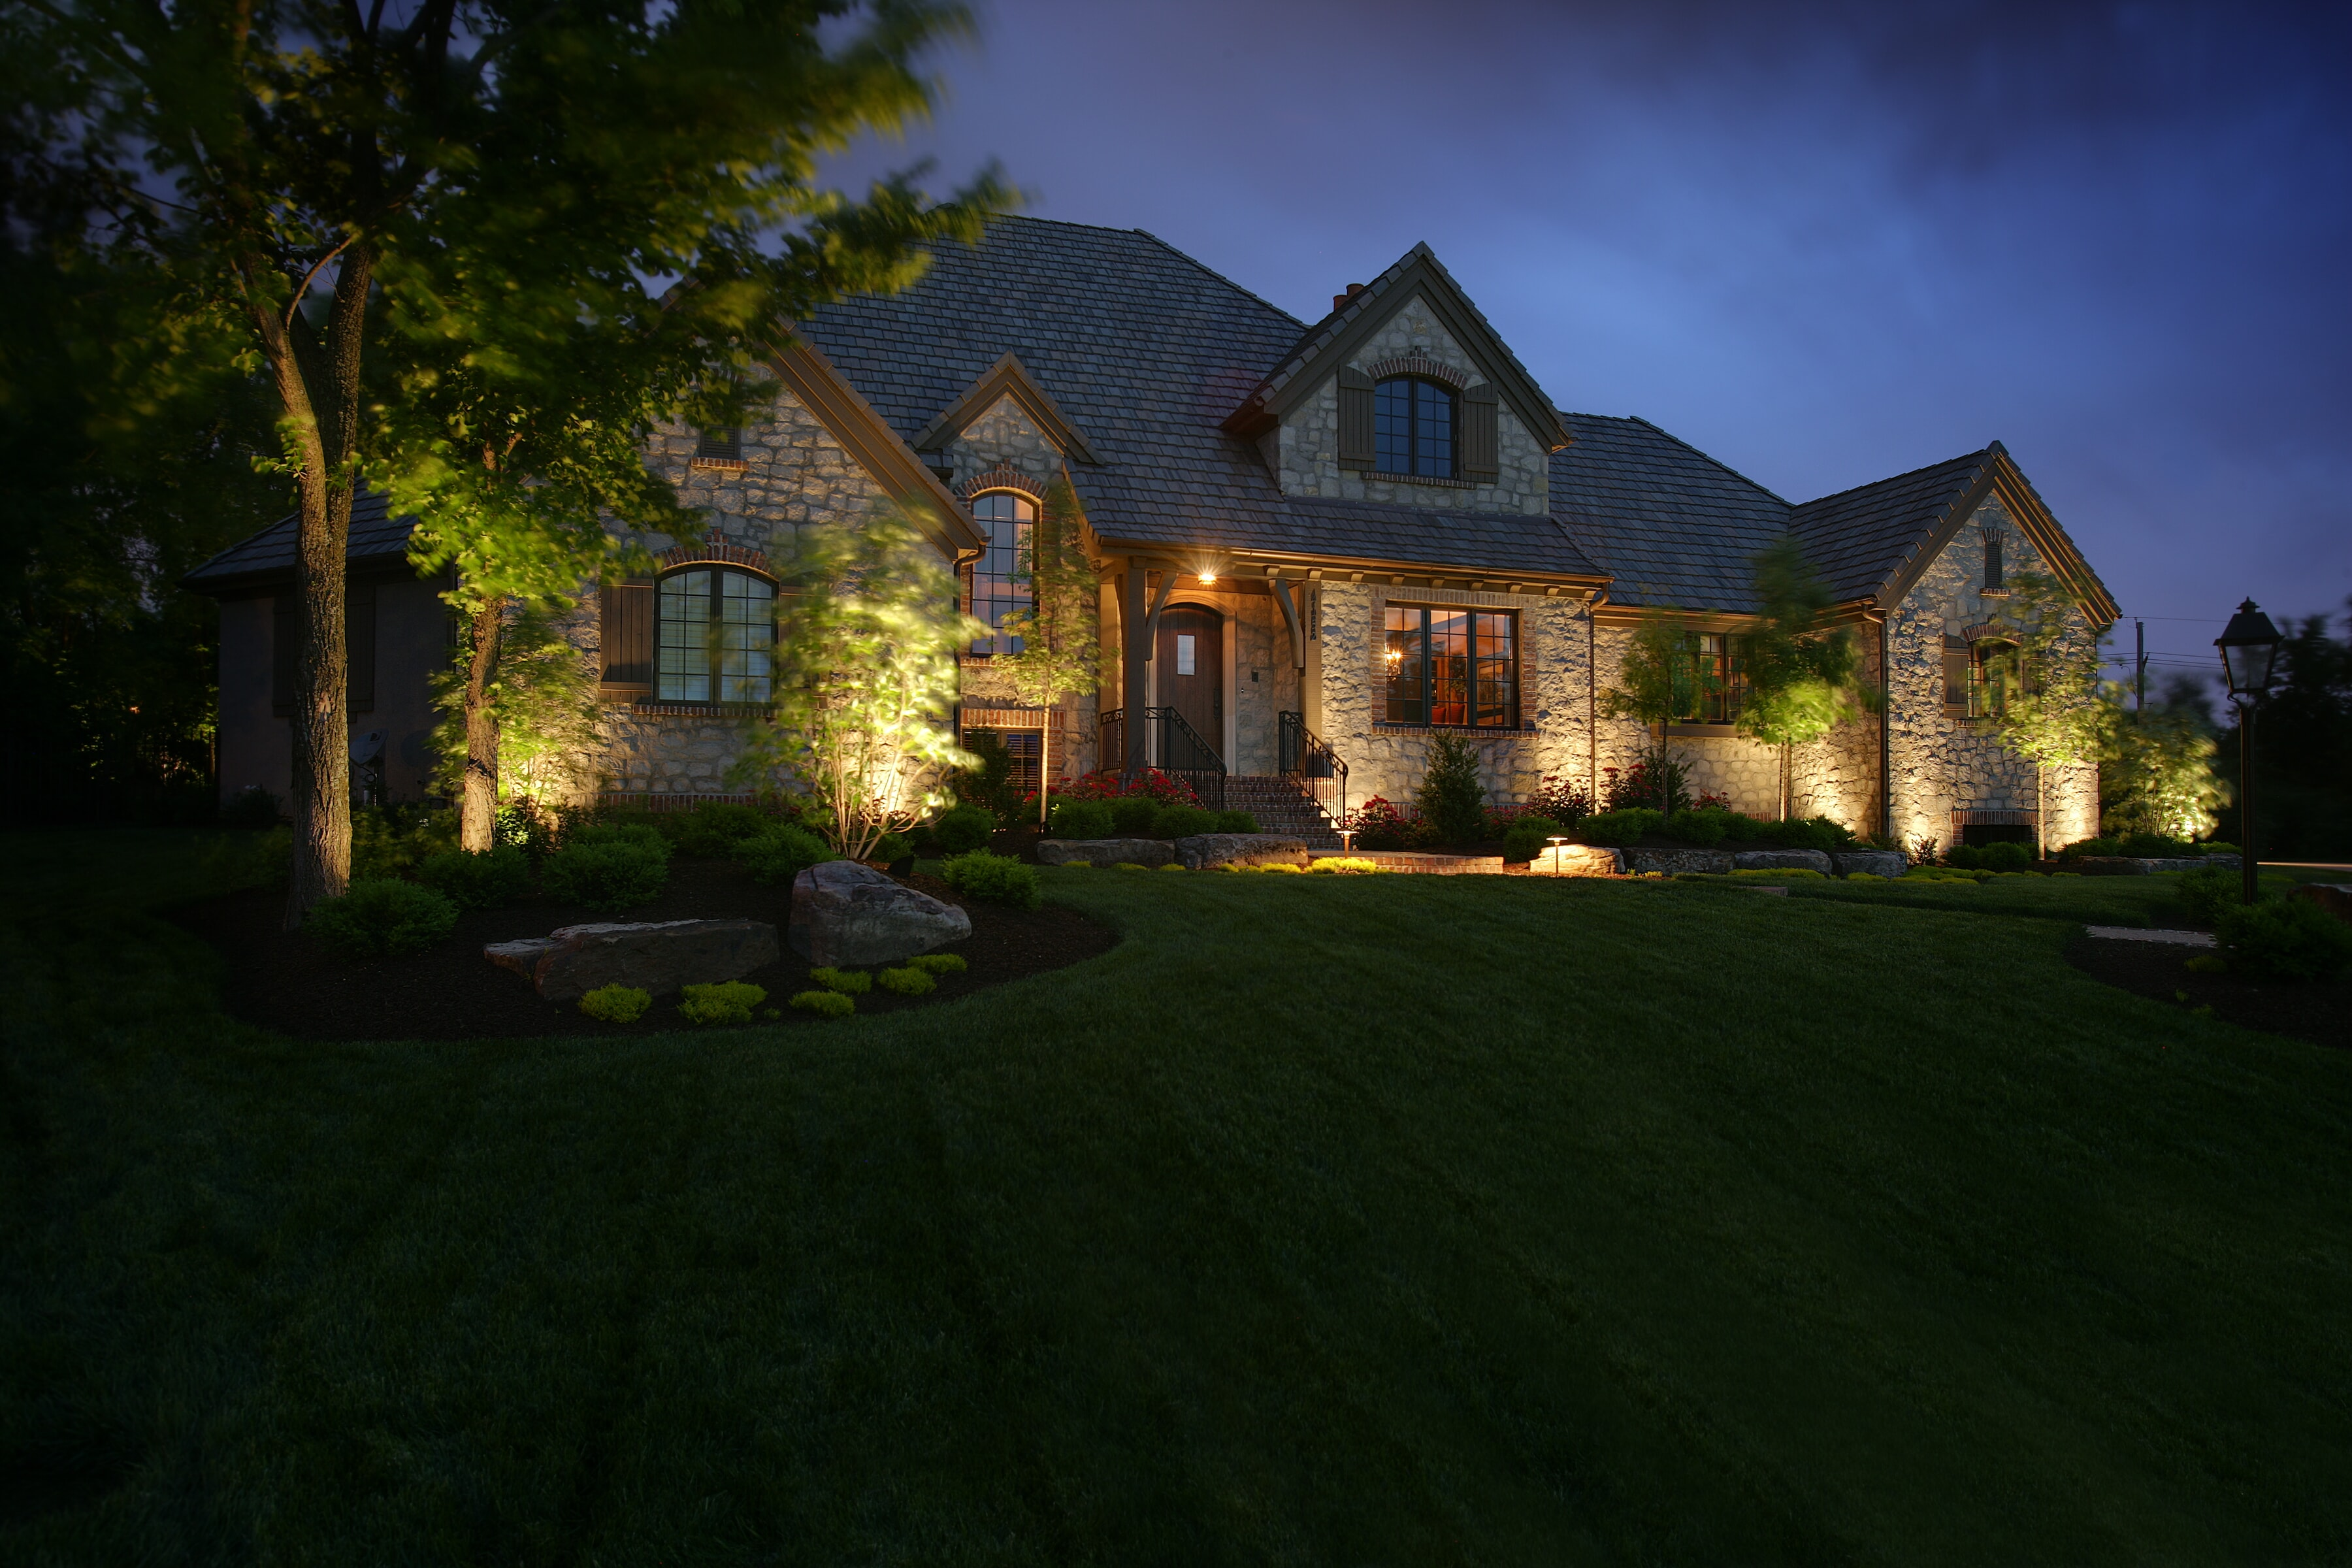 House with Green Lawn and Up Lighting Accents